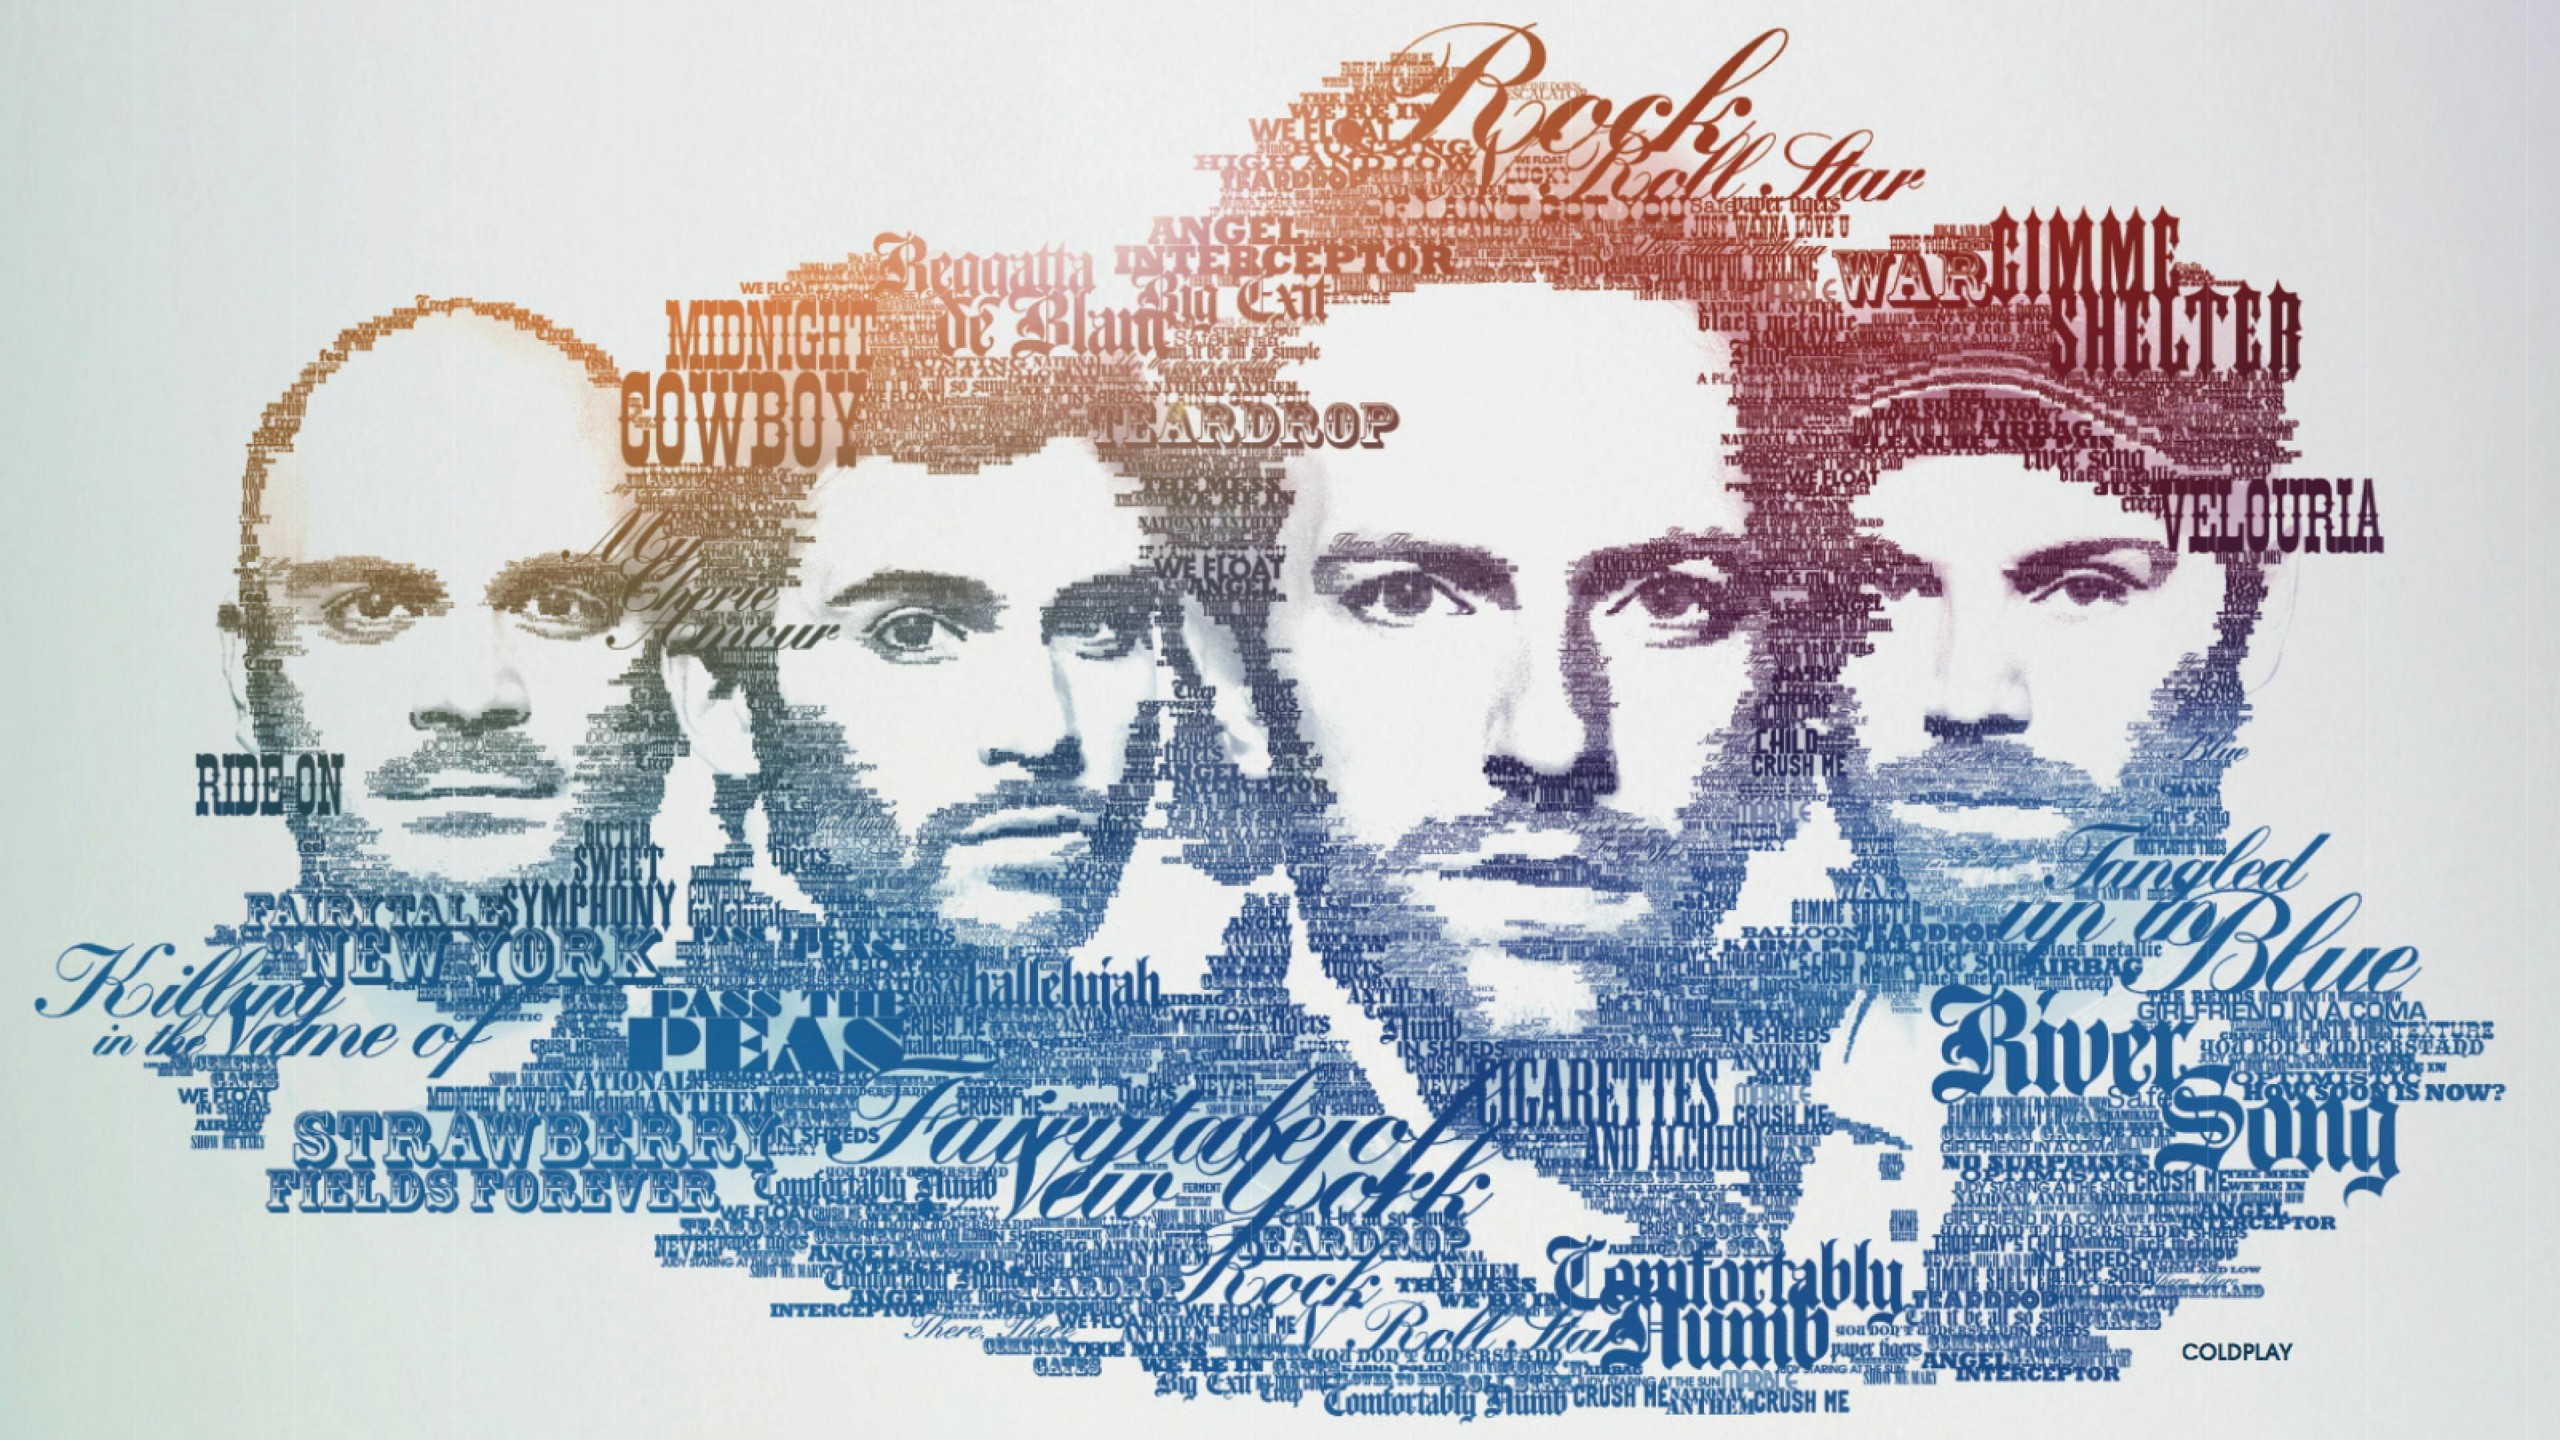 Coldplay Typographic Portrait Wallpaper for Social Media YouTube Channel Art